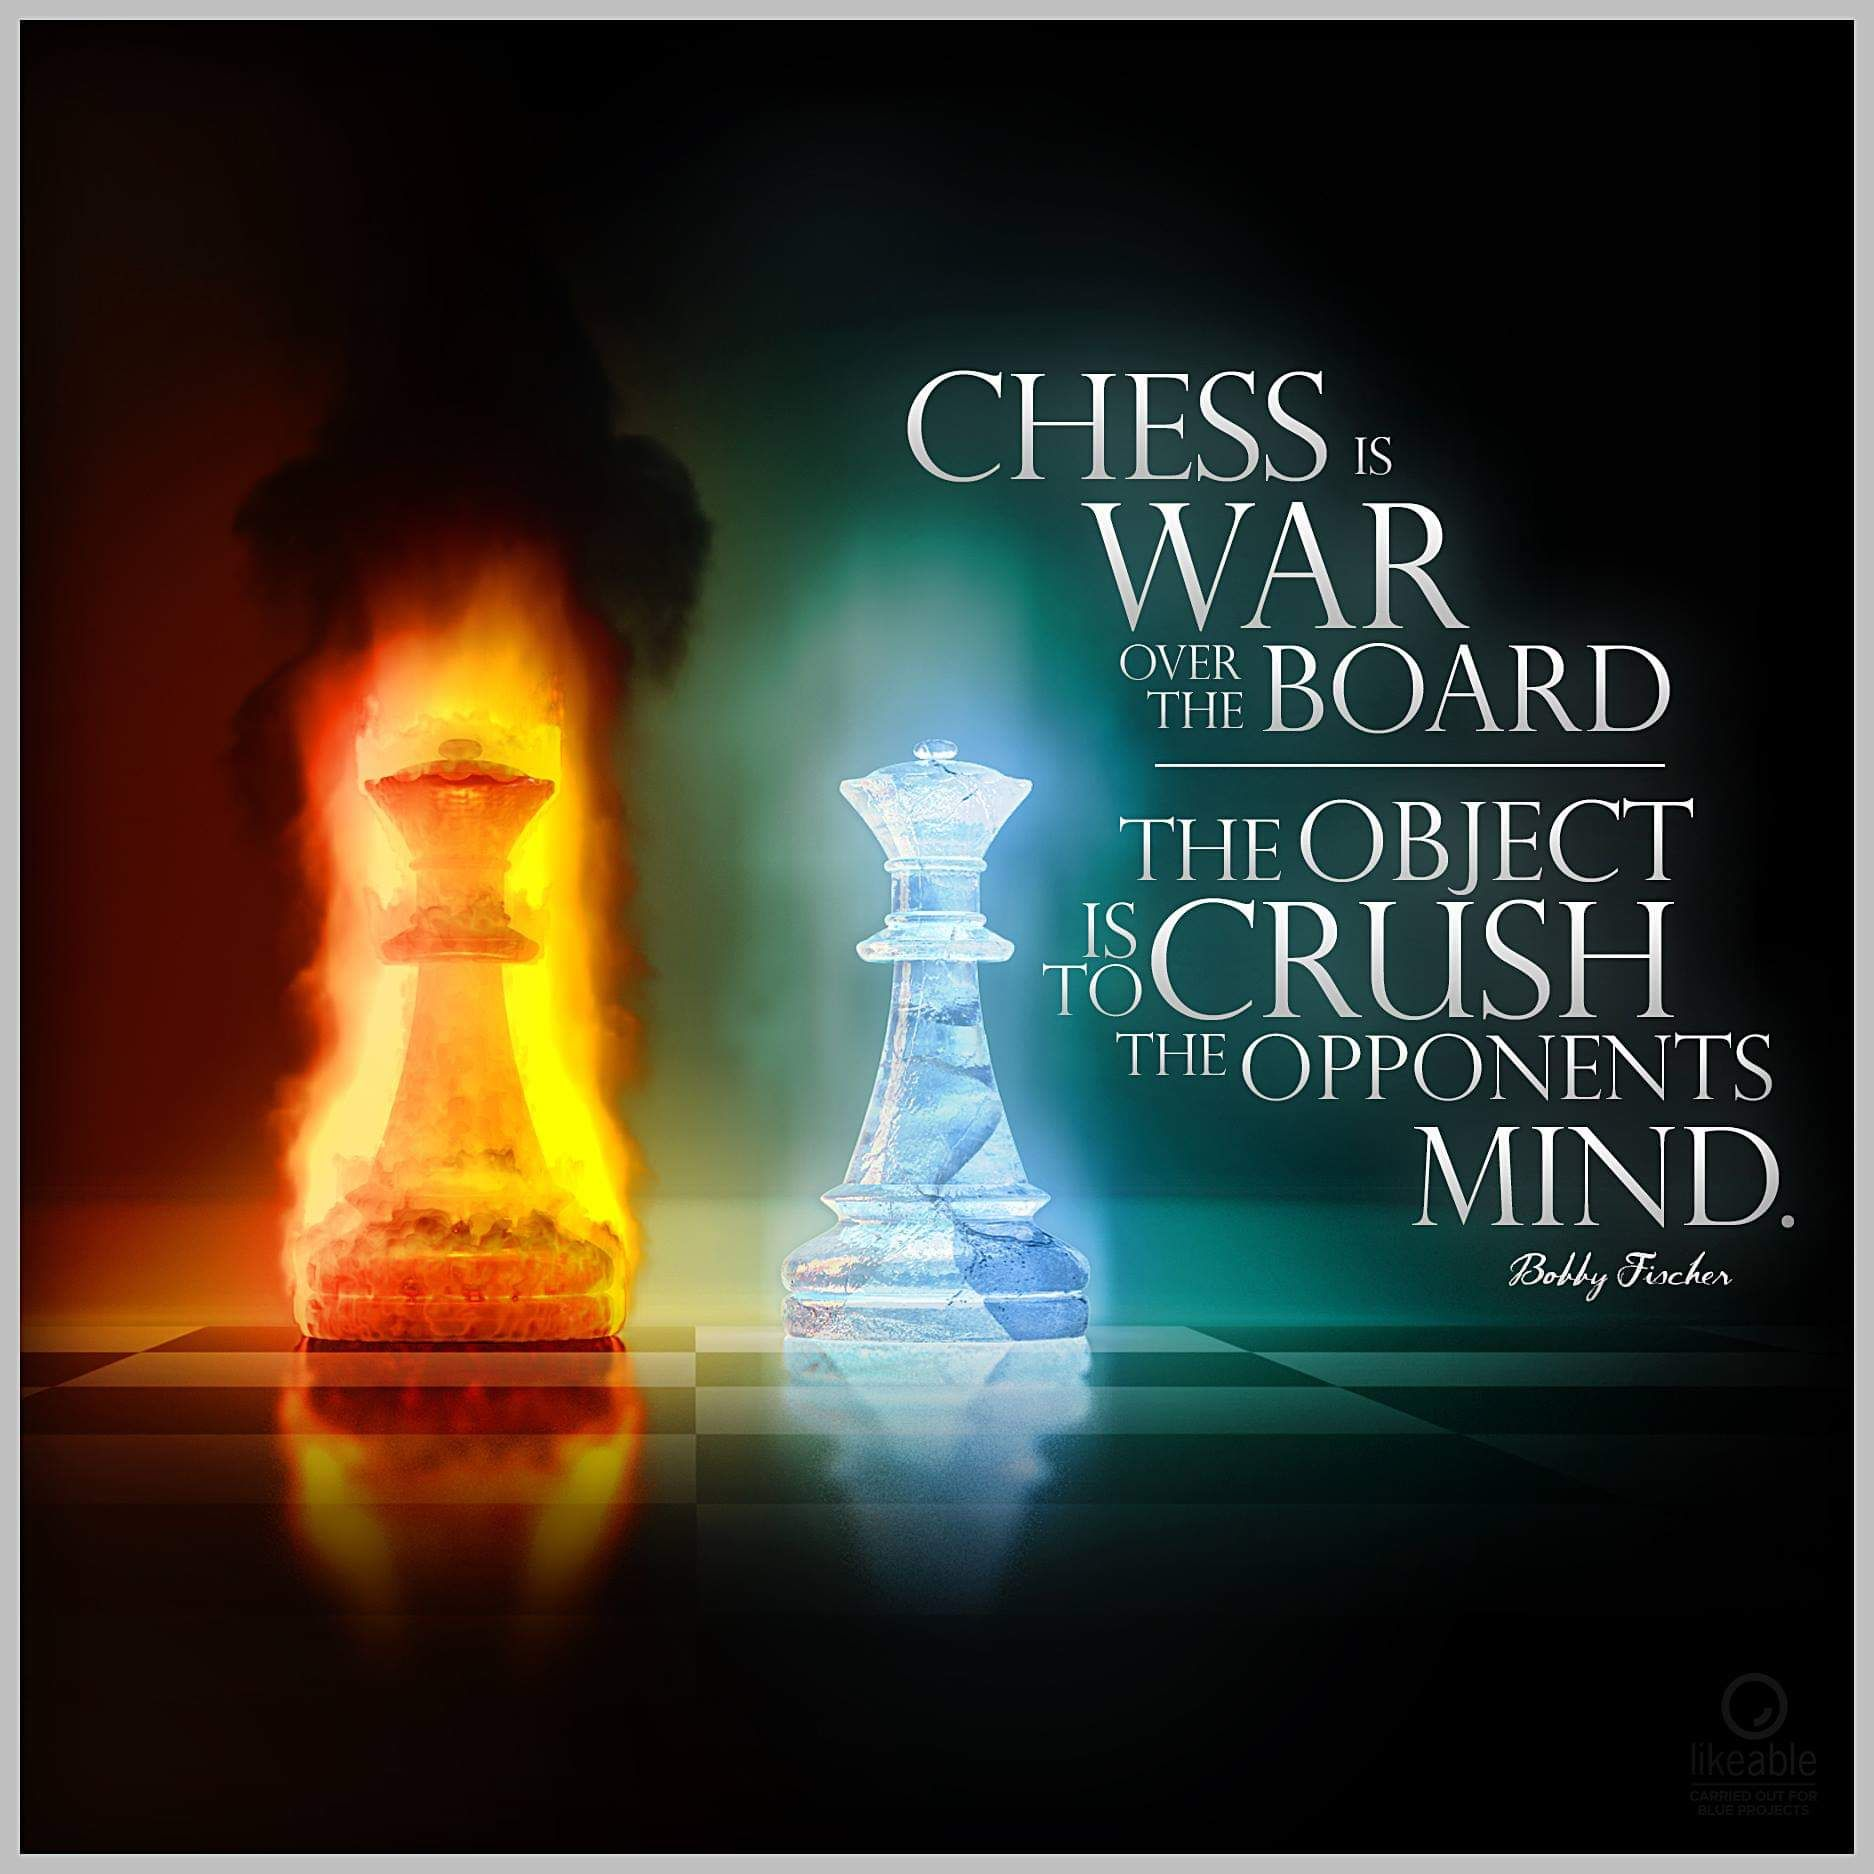 Pin by 𝕬𝖓𝖓𝖒𝖆𝖗𝖎𝖊 on CHESS ♟ Chess quotes, Chess